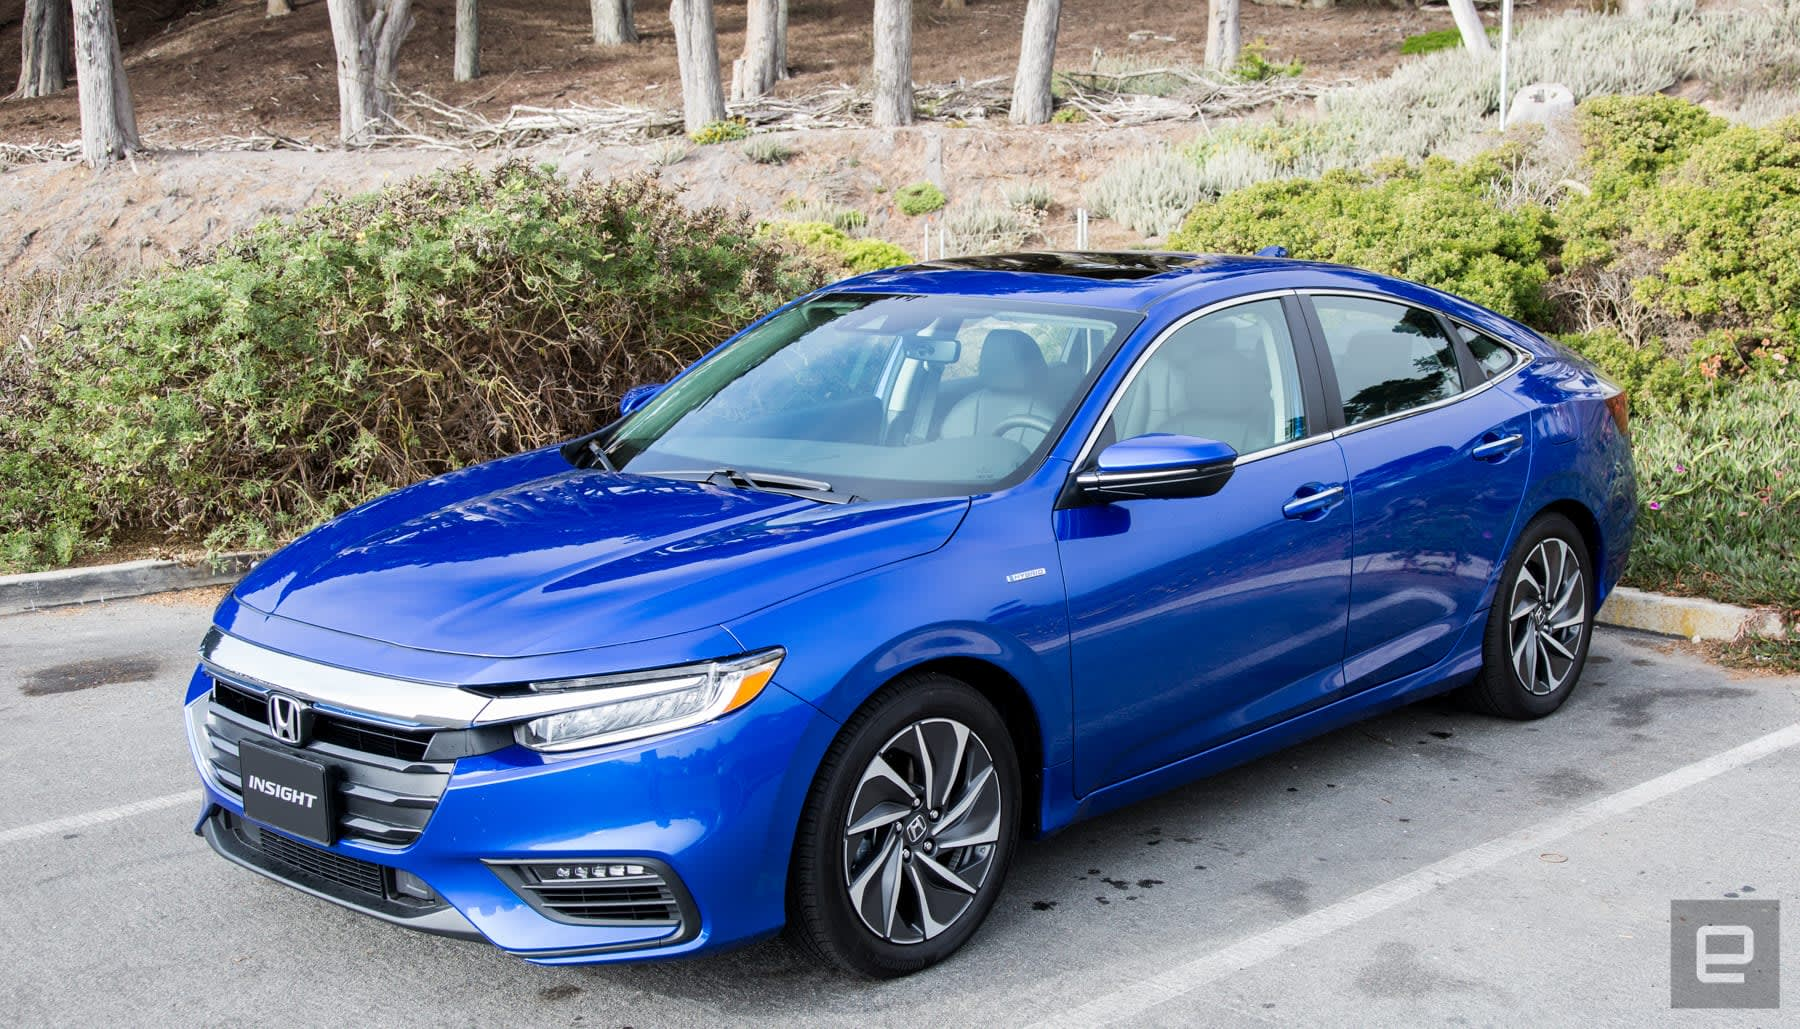 Honda Insight: Stylish, efficient and ready to take on the Prius